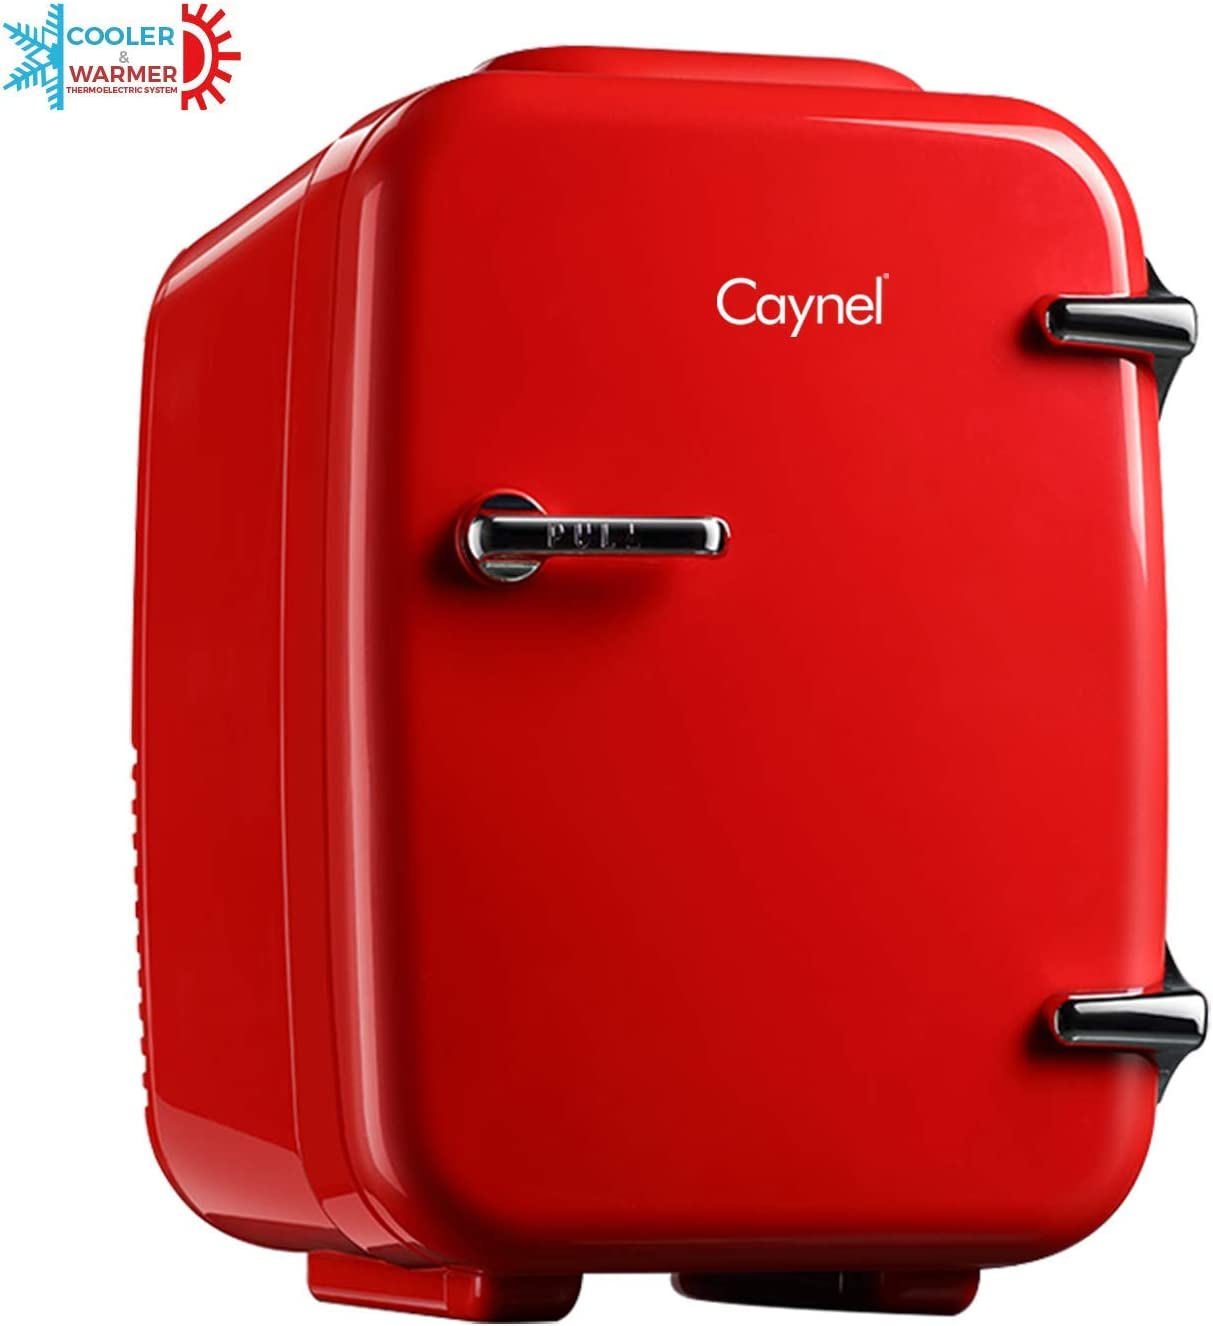 CAYNEL Mini Fridge Cooler and Warmer, (4Liter / 6Can) Portable Compact Personal Fridge, AC/DC Thermoelectric System, 100% Freon-Free Eco Friendly for Home, Office and Car (Cherry Red)